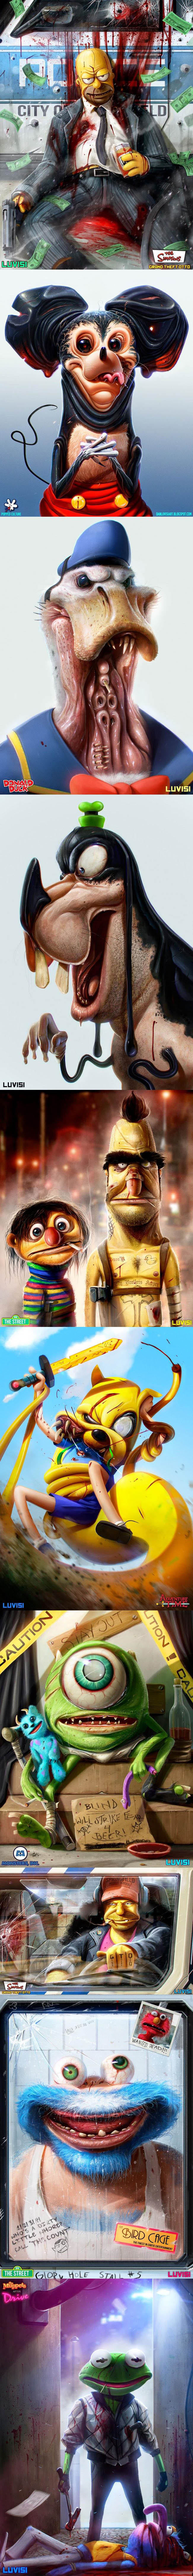 creepy real life cartoon characters, fan art, wtf, simpsons, homer, micky mouse